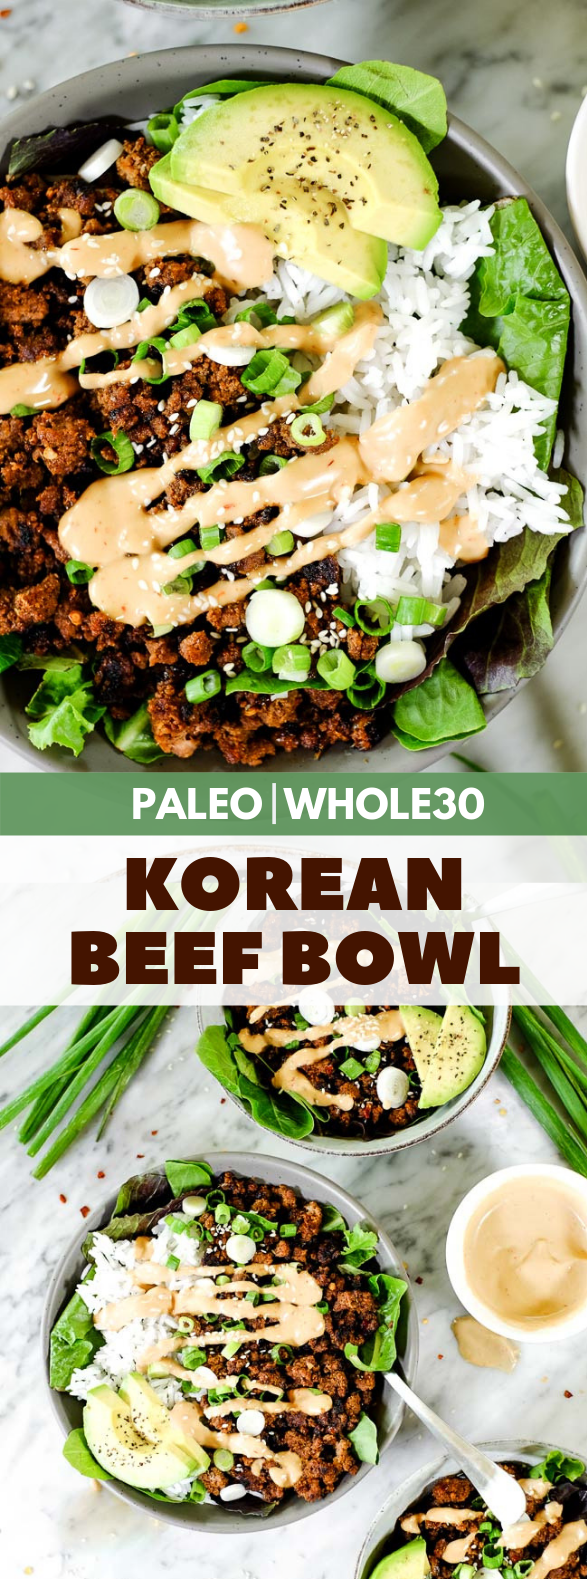 KOREAN BEEF BOWL (PALEO + WHOLE30) #dietrecipes #koreanfood